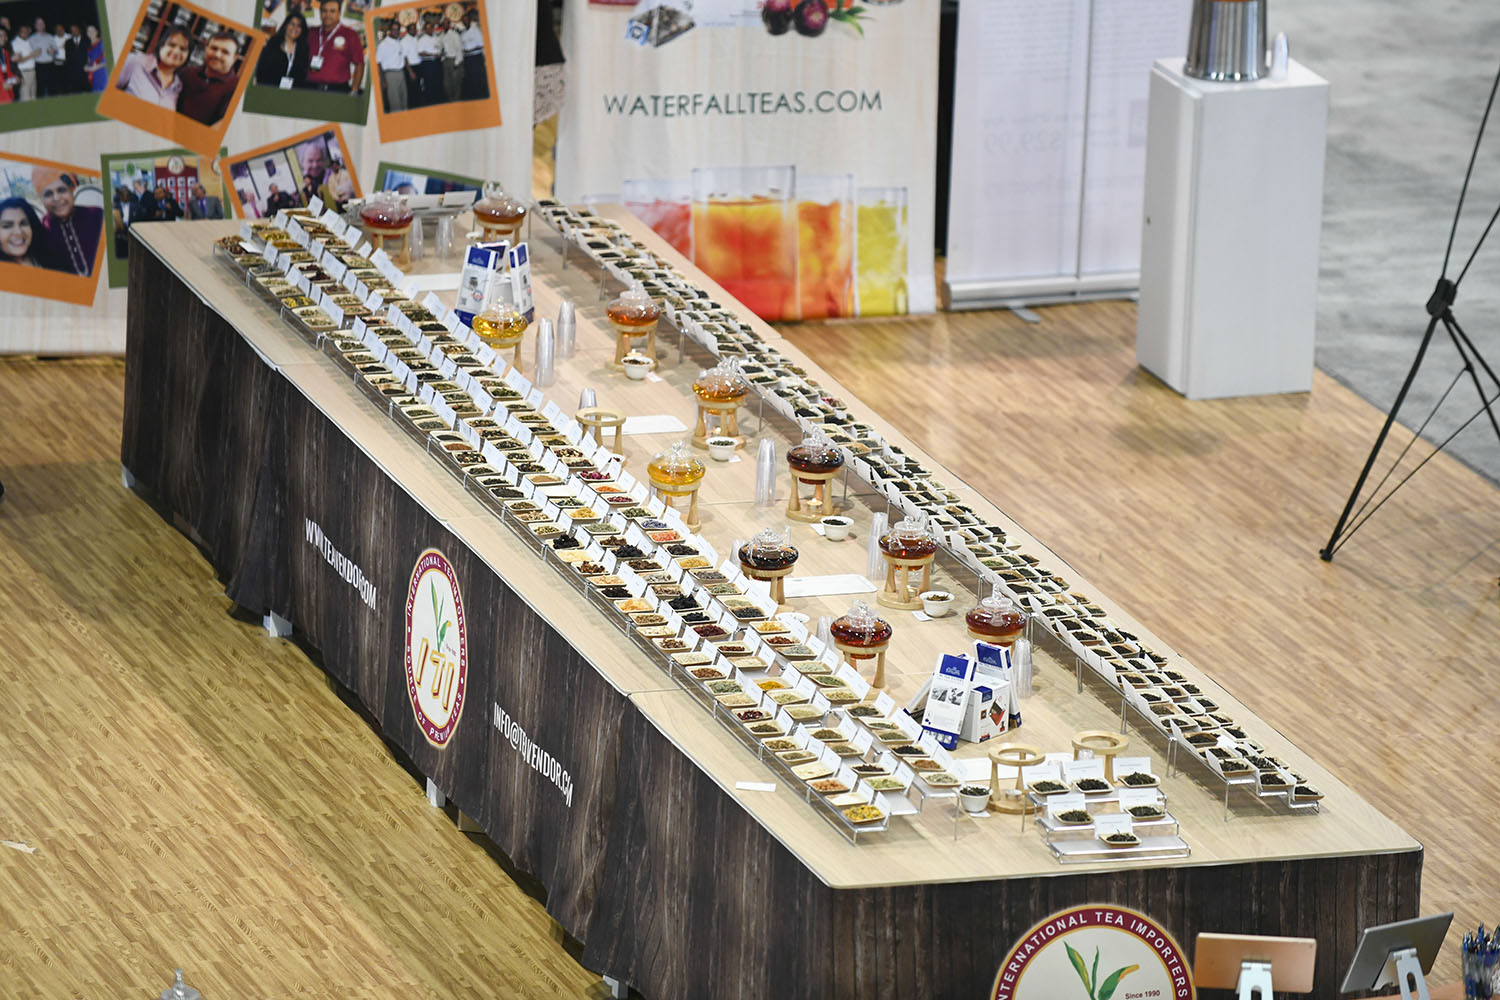 World Tea Conference & Expo